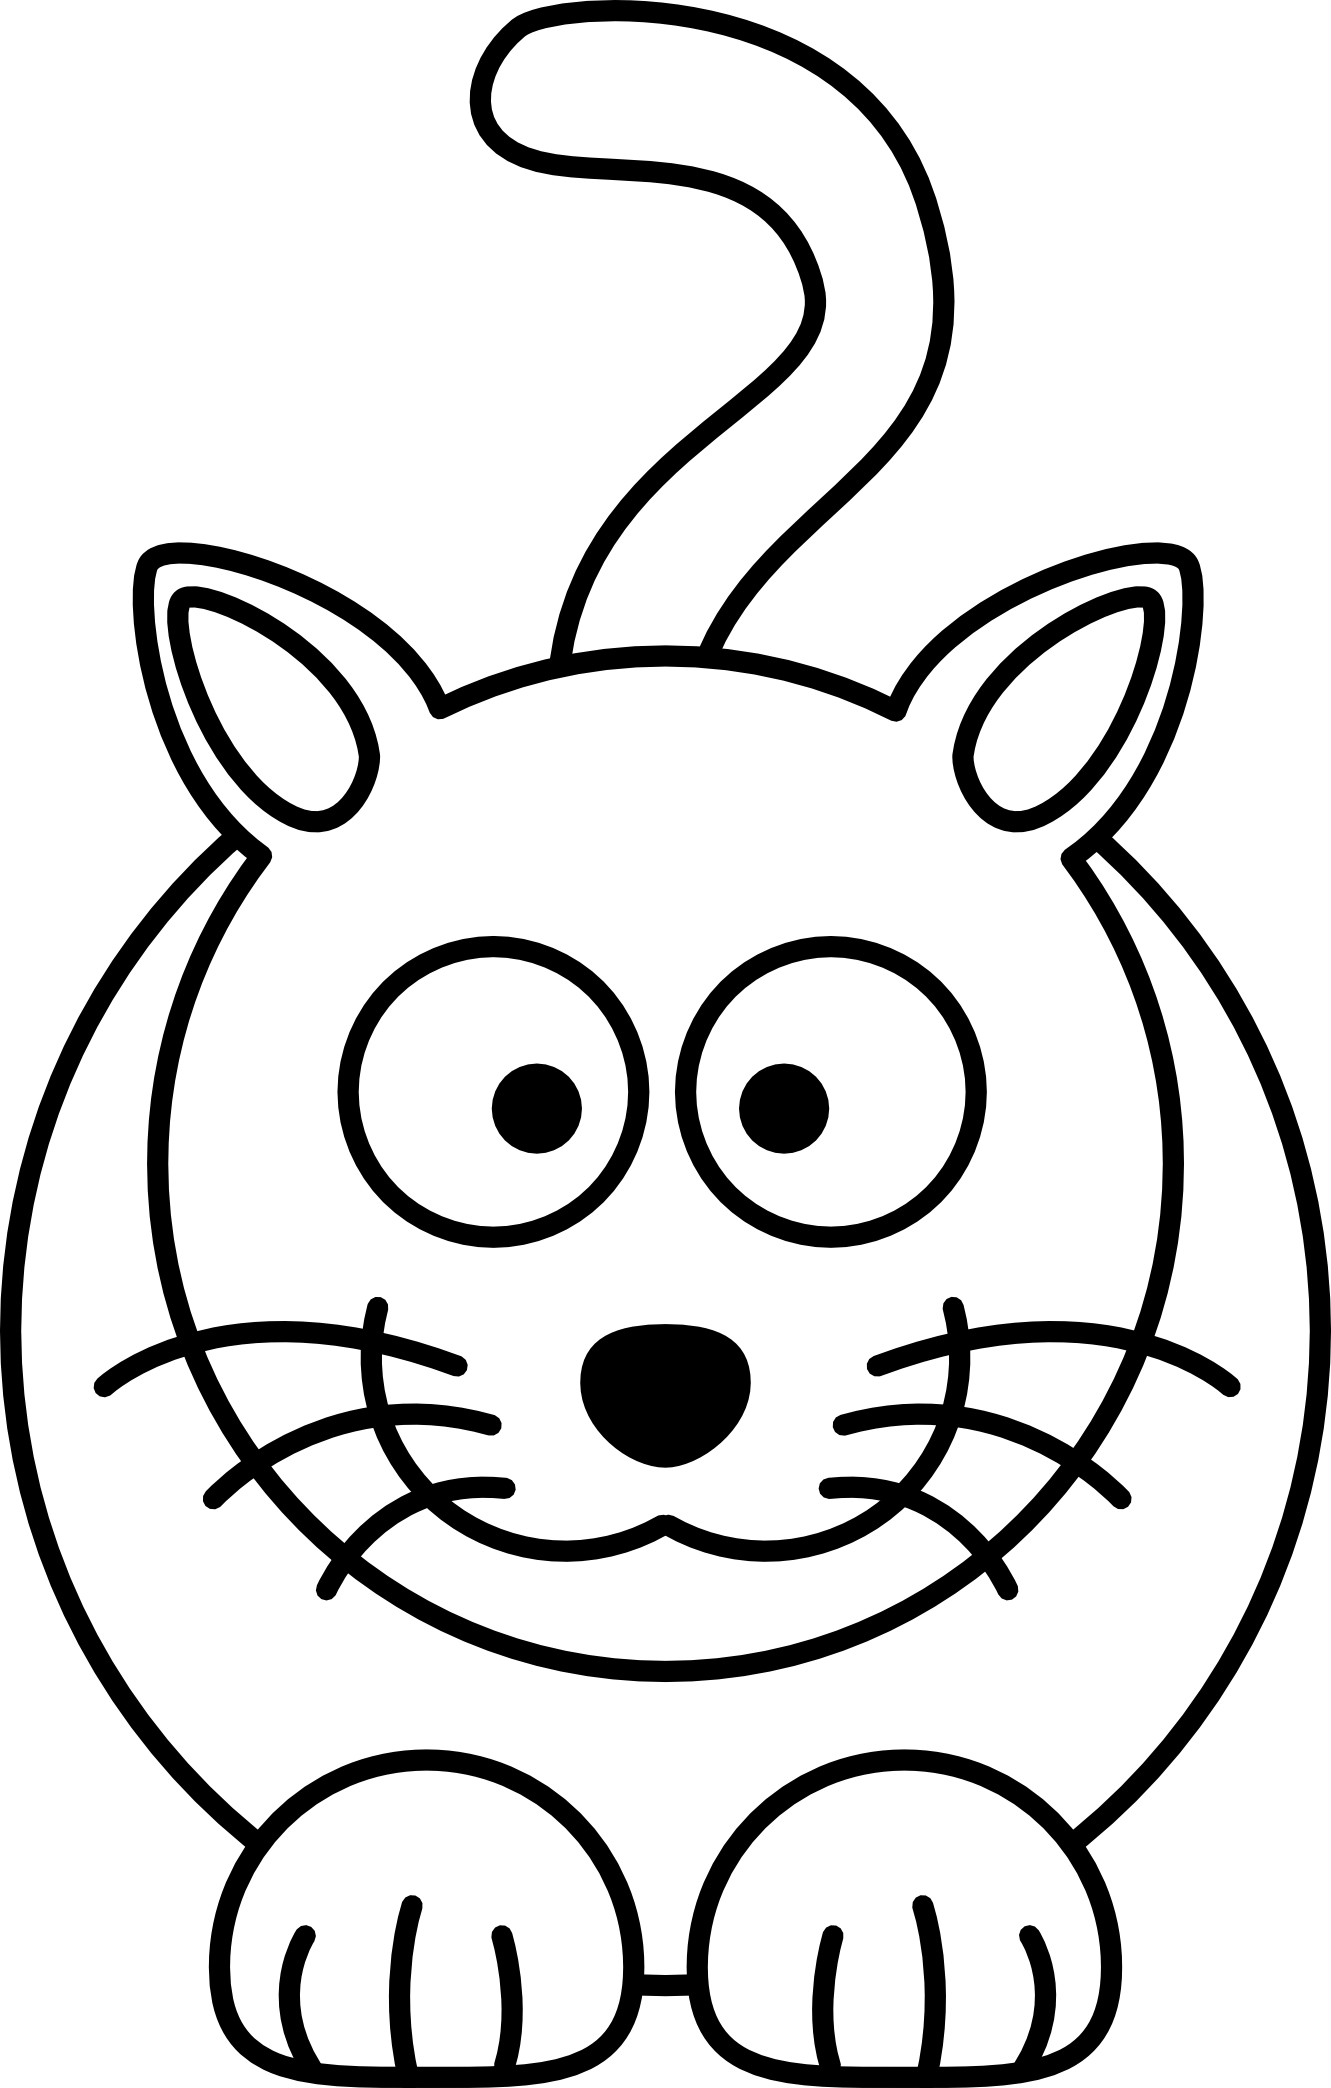 1331x2088 Pictures Simple Line Drawings For Kids,